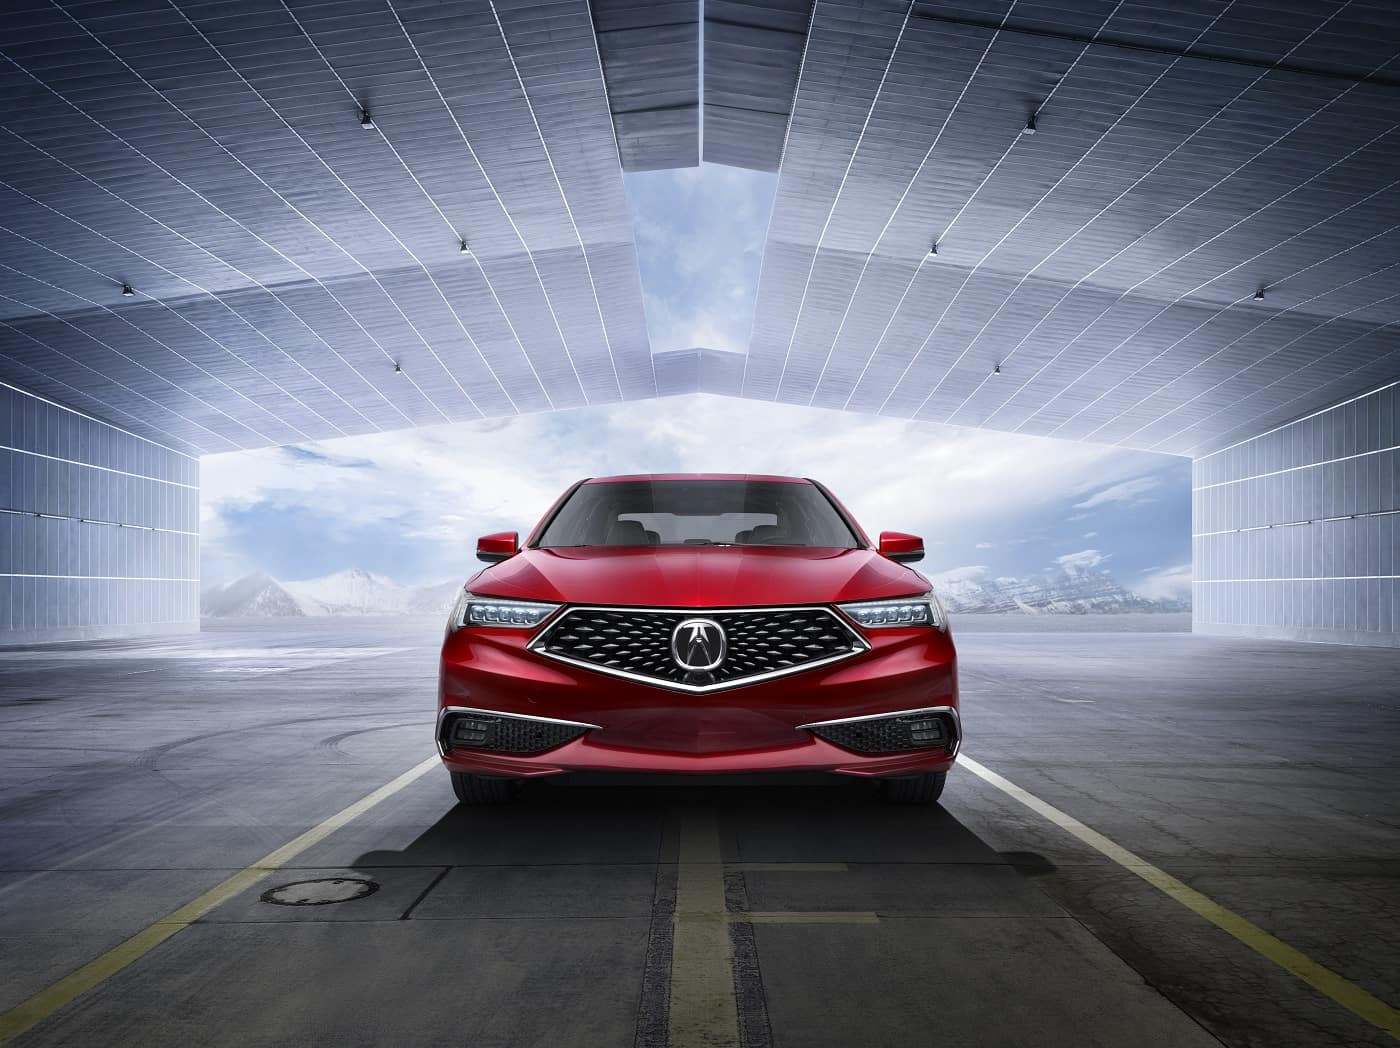 2020 TLX Red